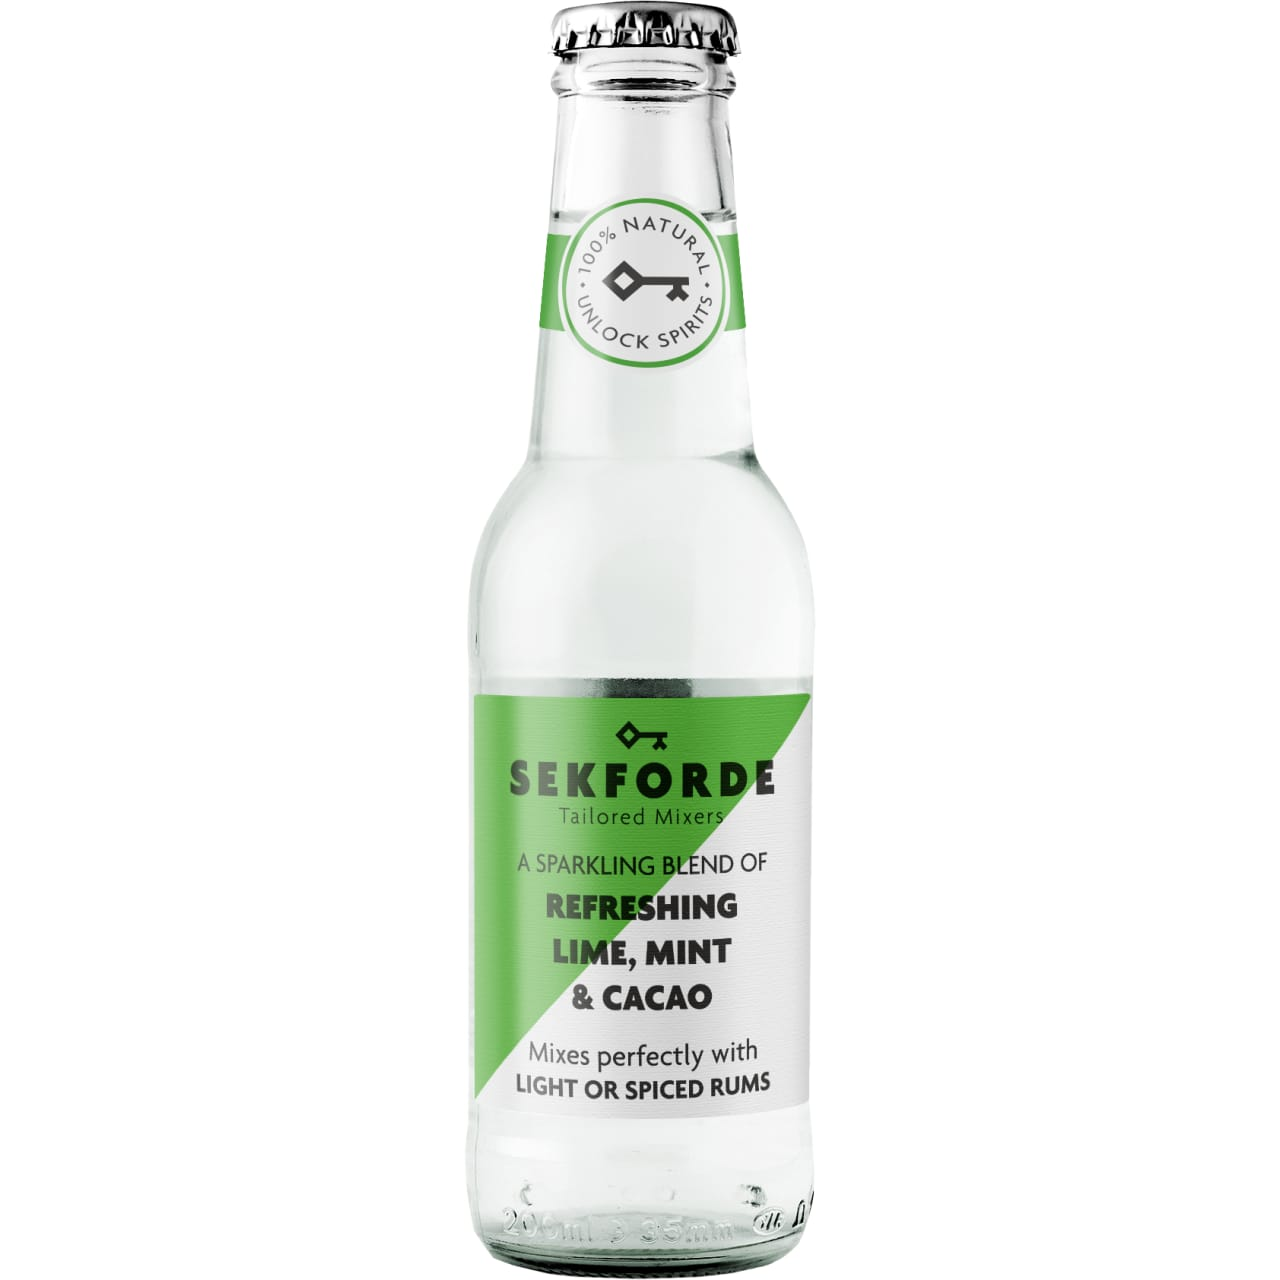 Product Image - Sekforde Botanical Mixer for Light & Spiced Rum Pack of 12